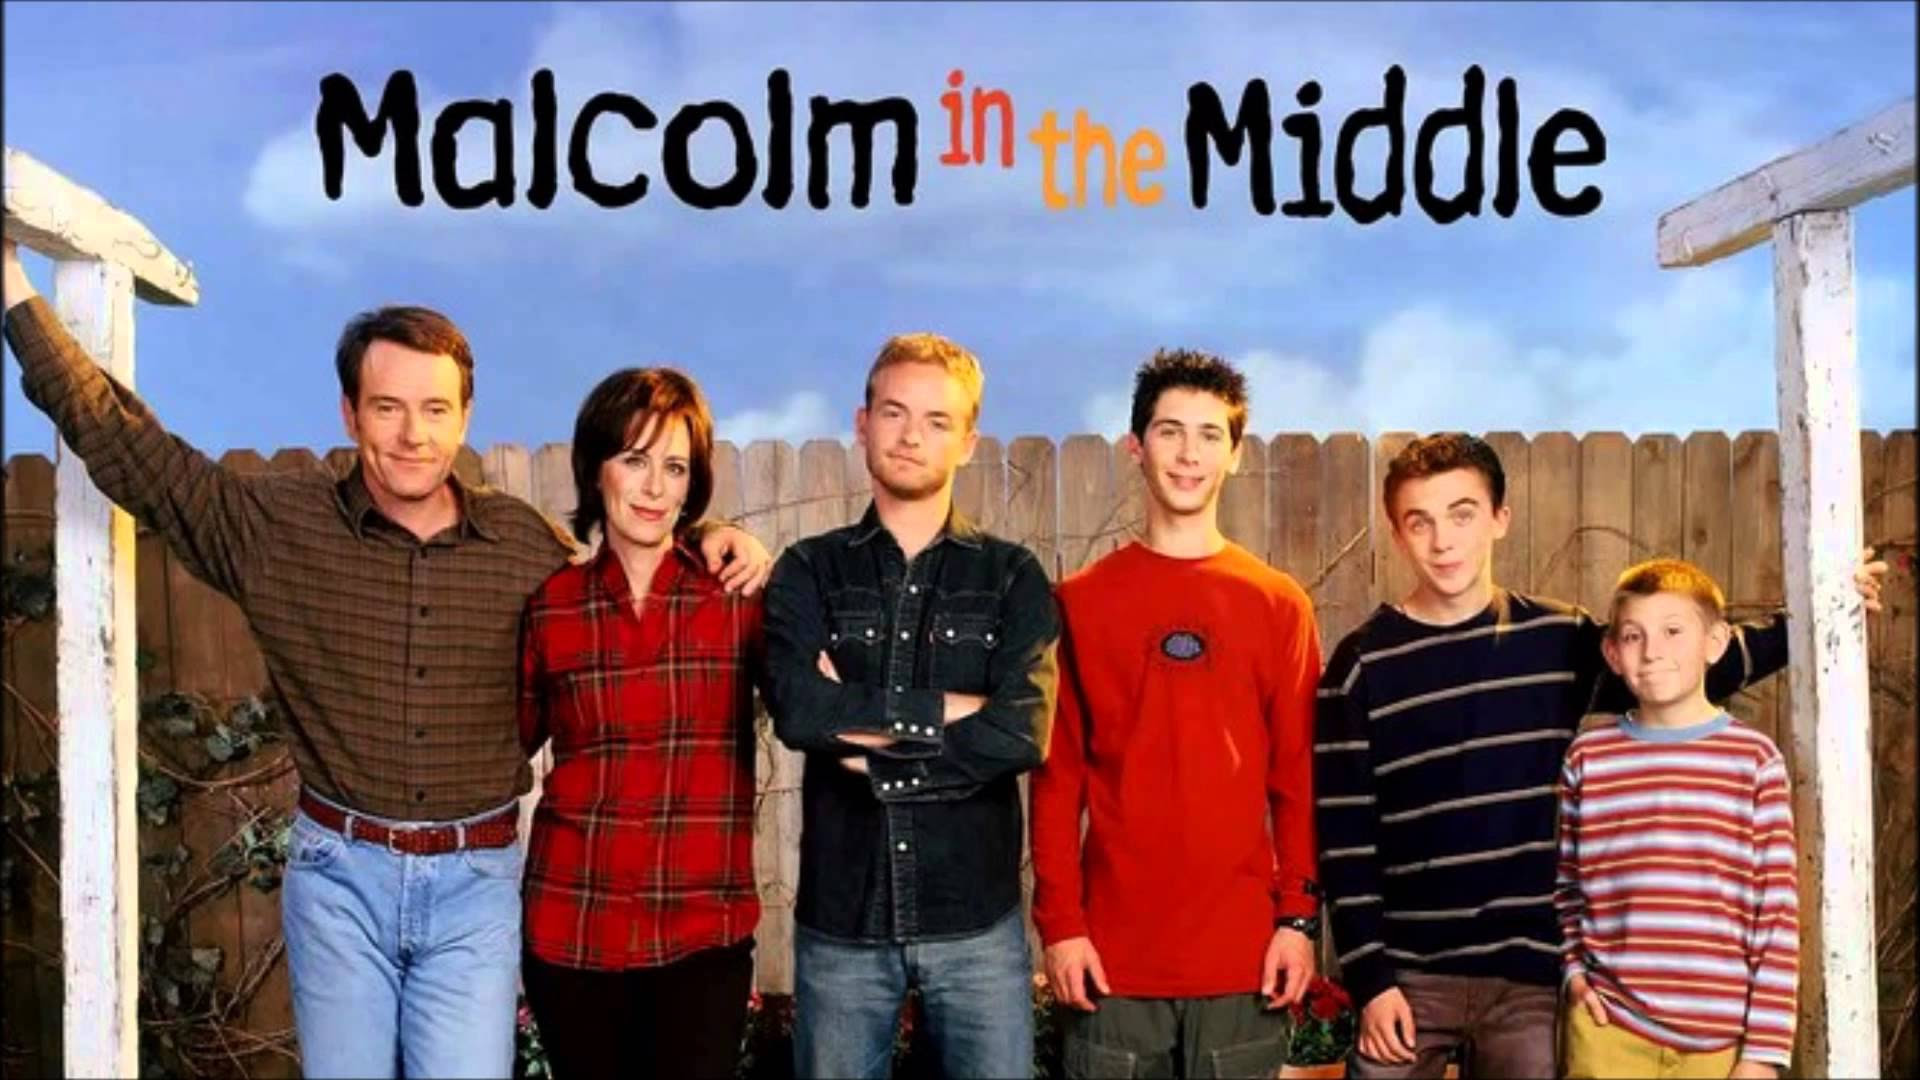 5 Important Lessons Malcolm In The Middle Taught Us About Family